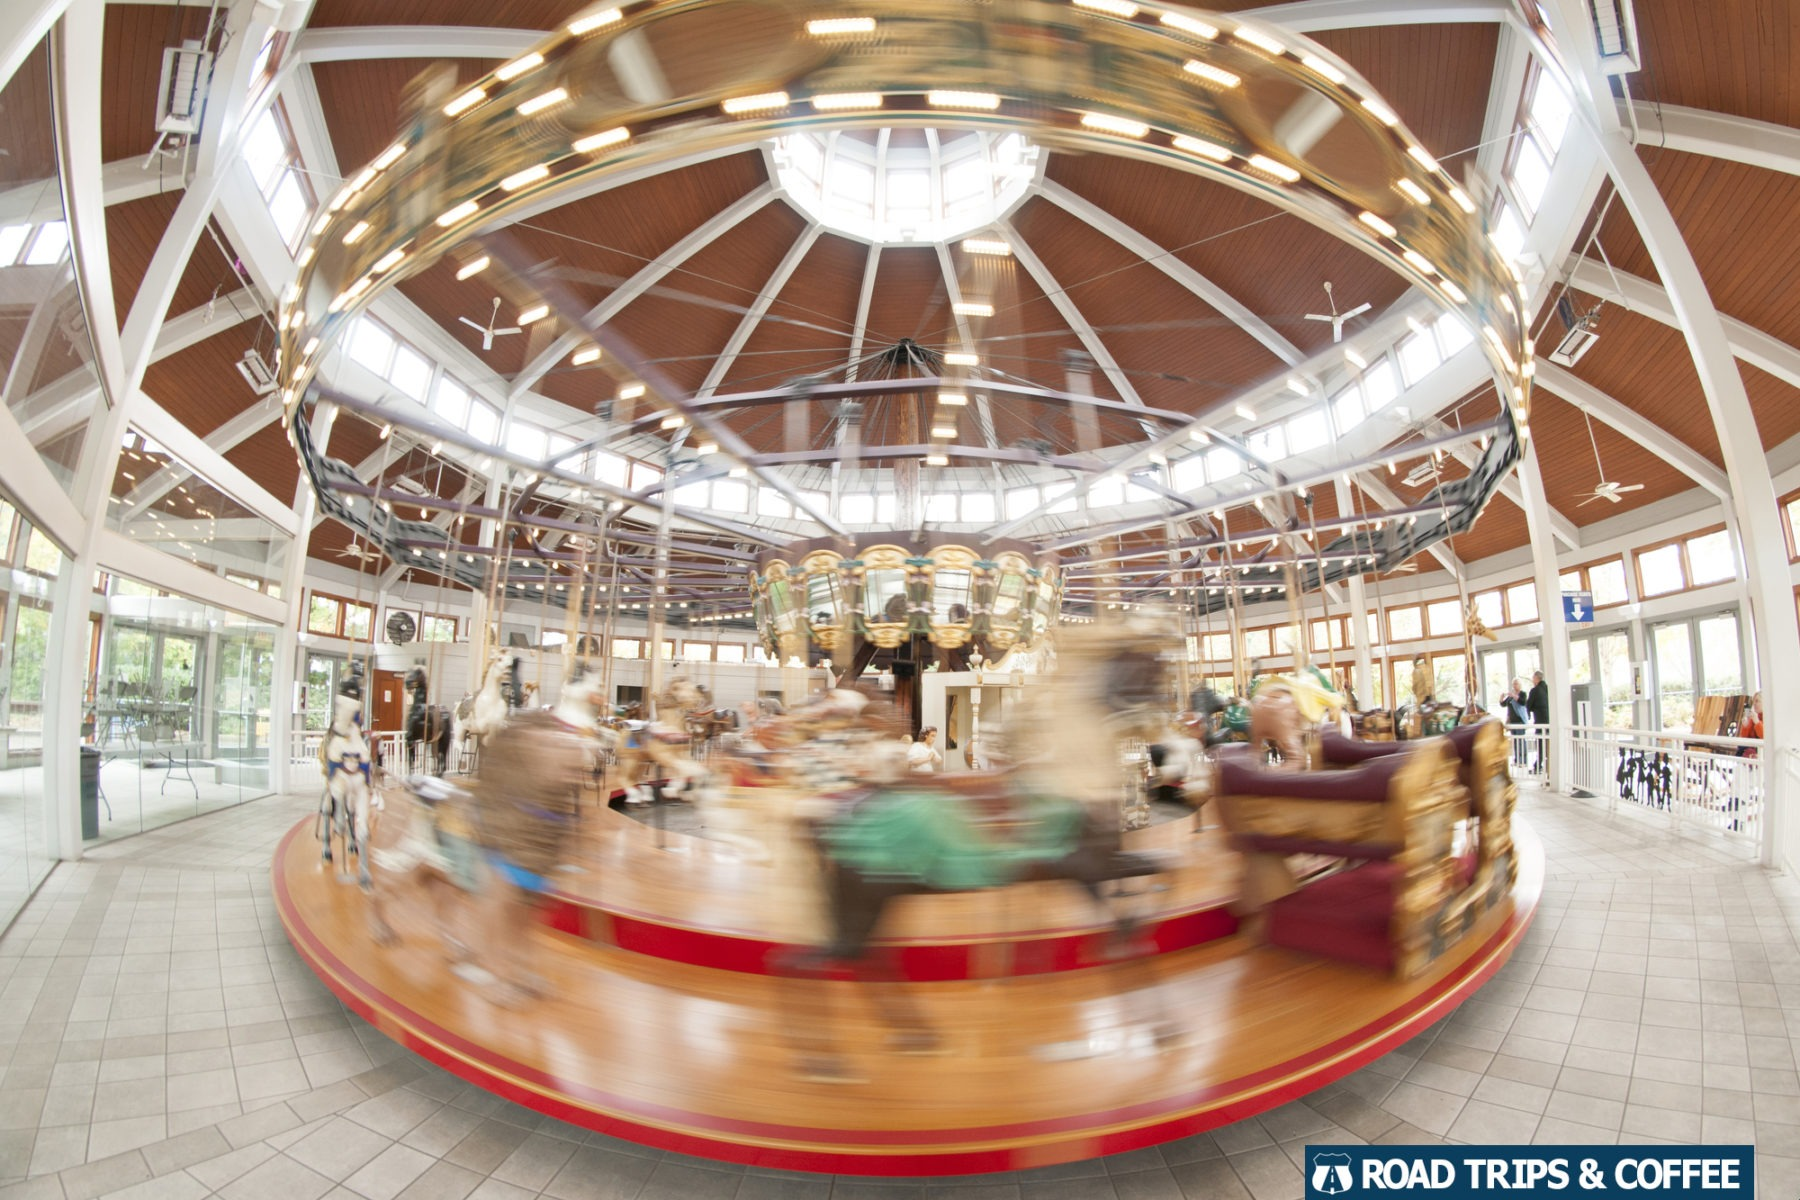 The historic Coolidge Park Antique Carousel spins round and round in Chattanooga, Tennessee